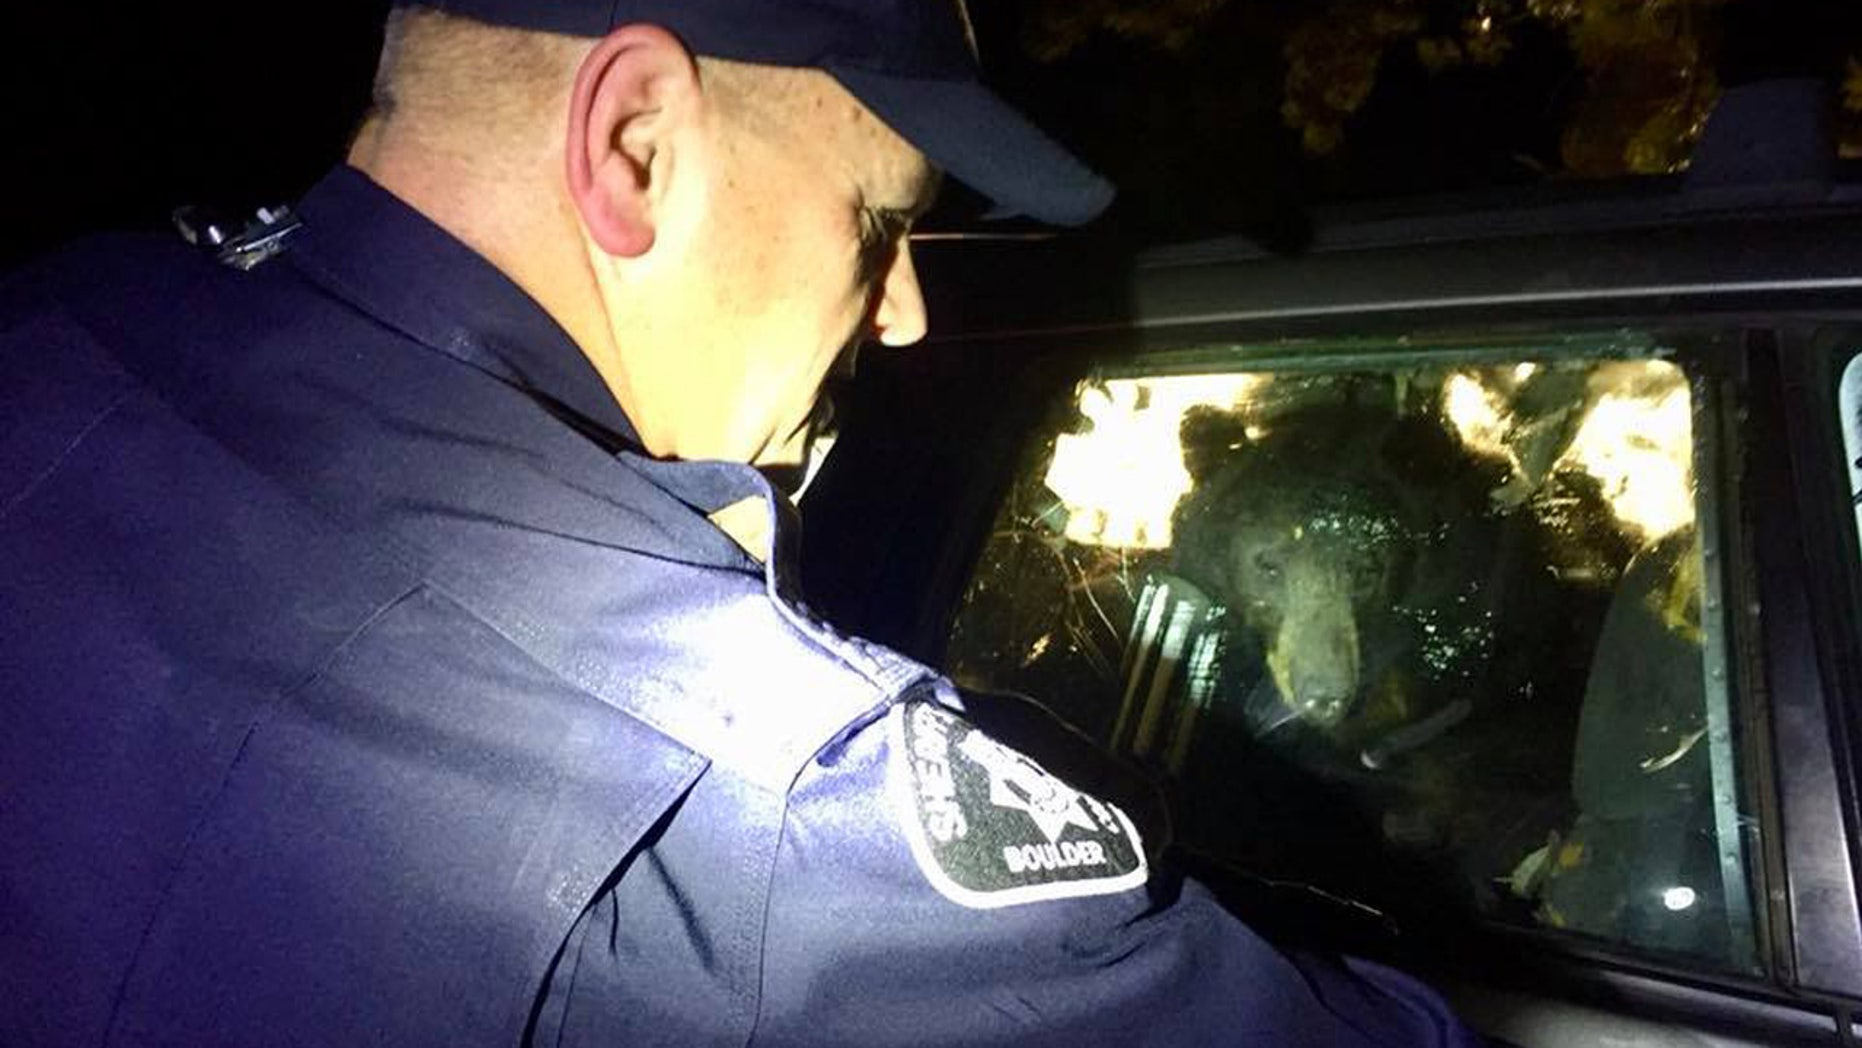 The Boulder County Sheriff's Office had to free a bear from a car on Monday after it got locked inside.